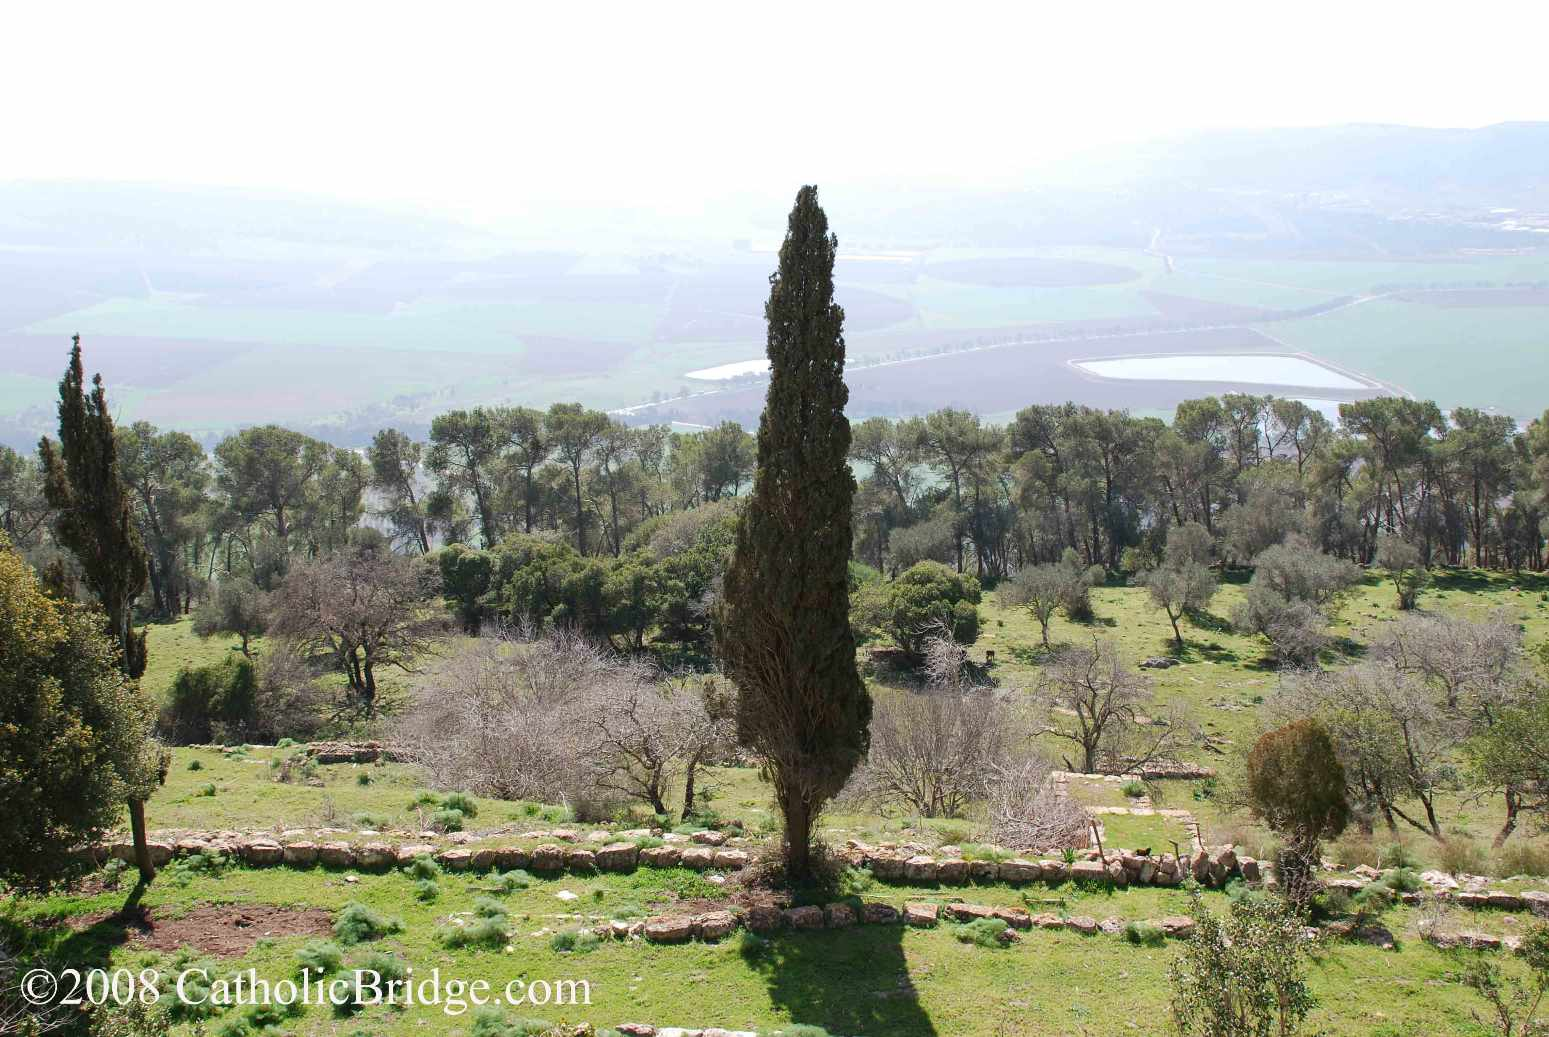 Mount Tabor, site of the Transfiguration - Israel